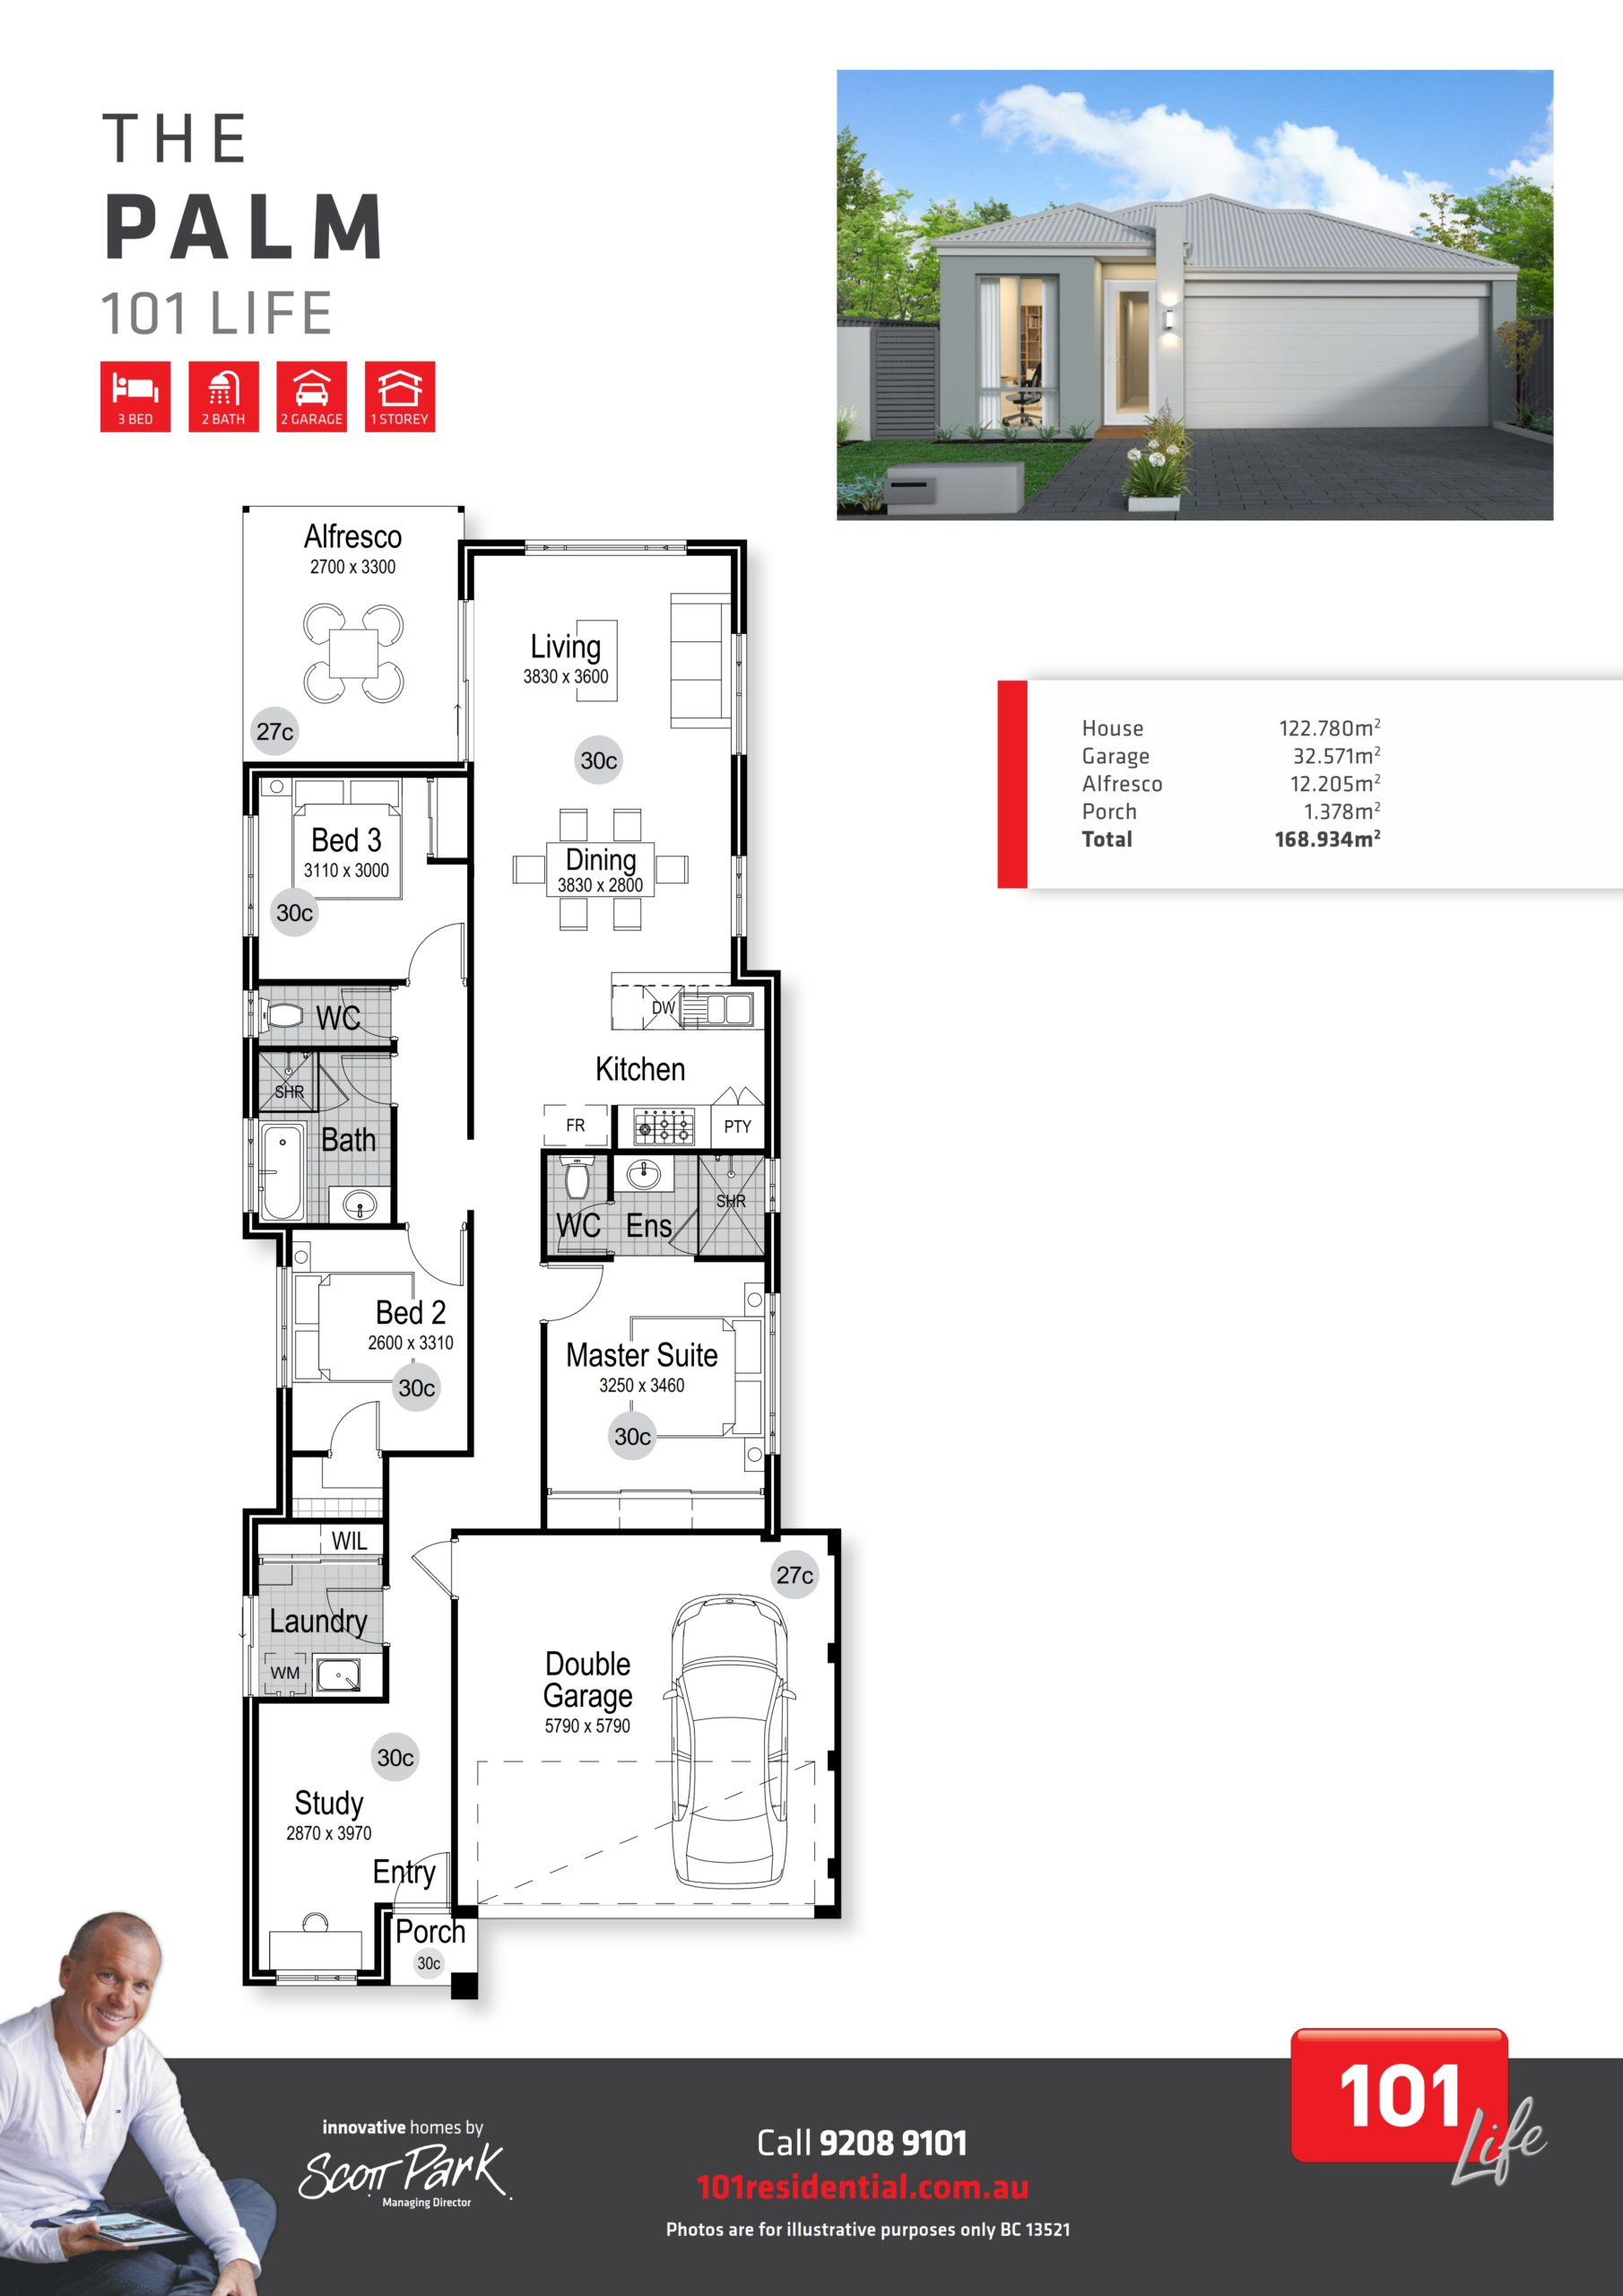 101 A3 Floor Plan - Palm WEB_001